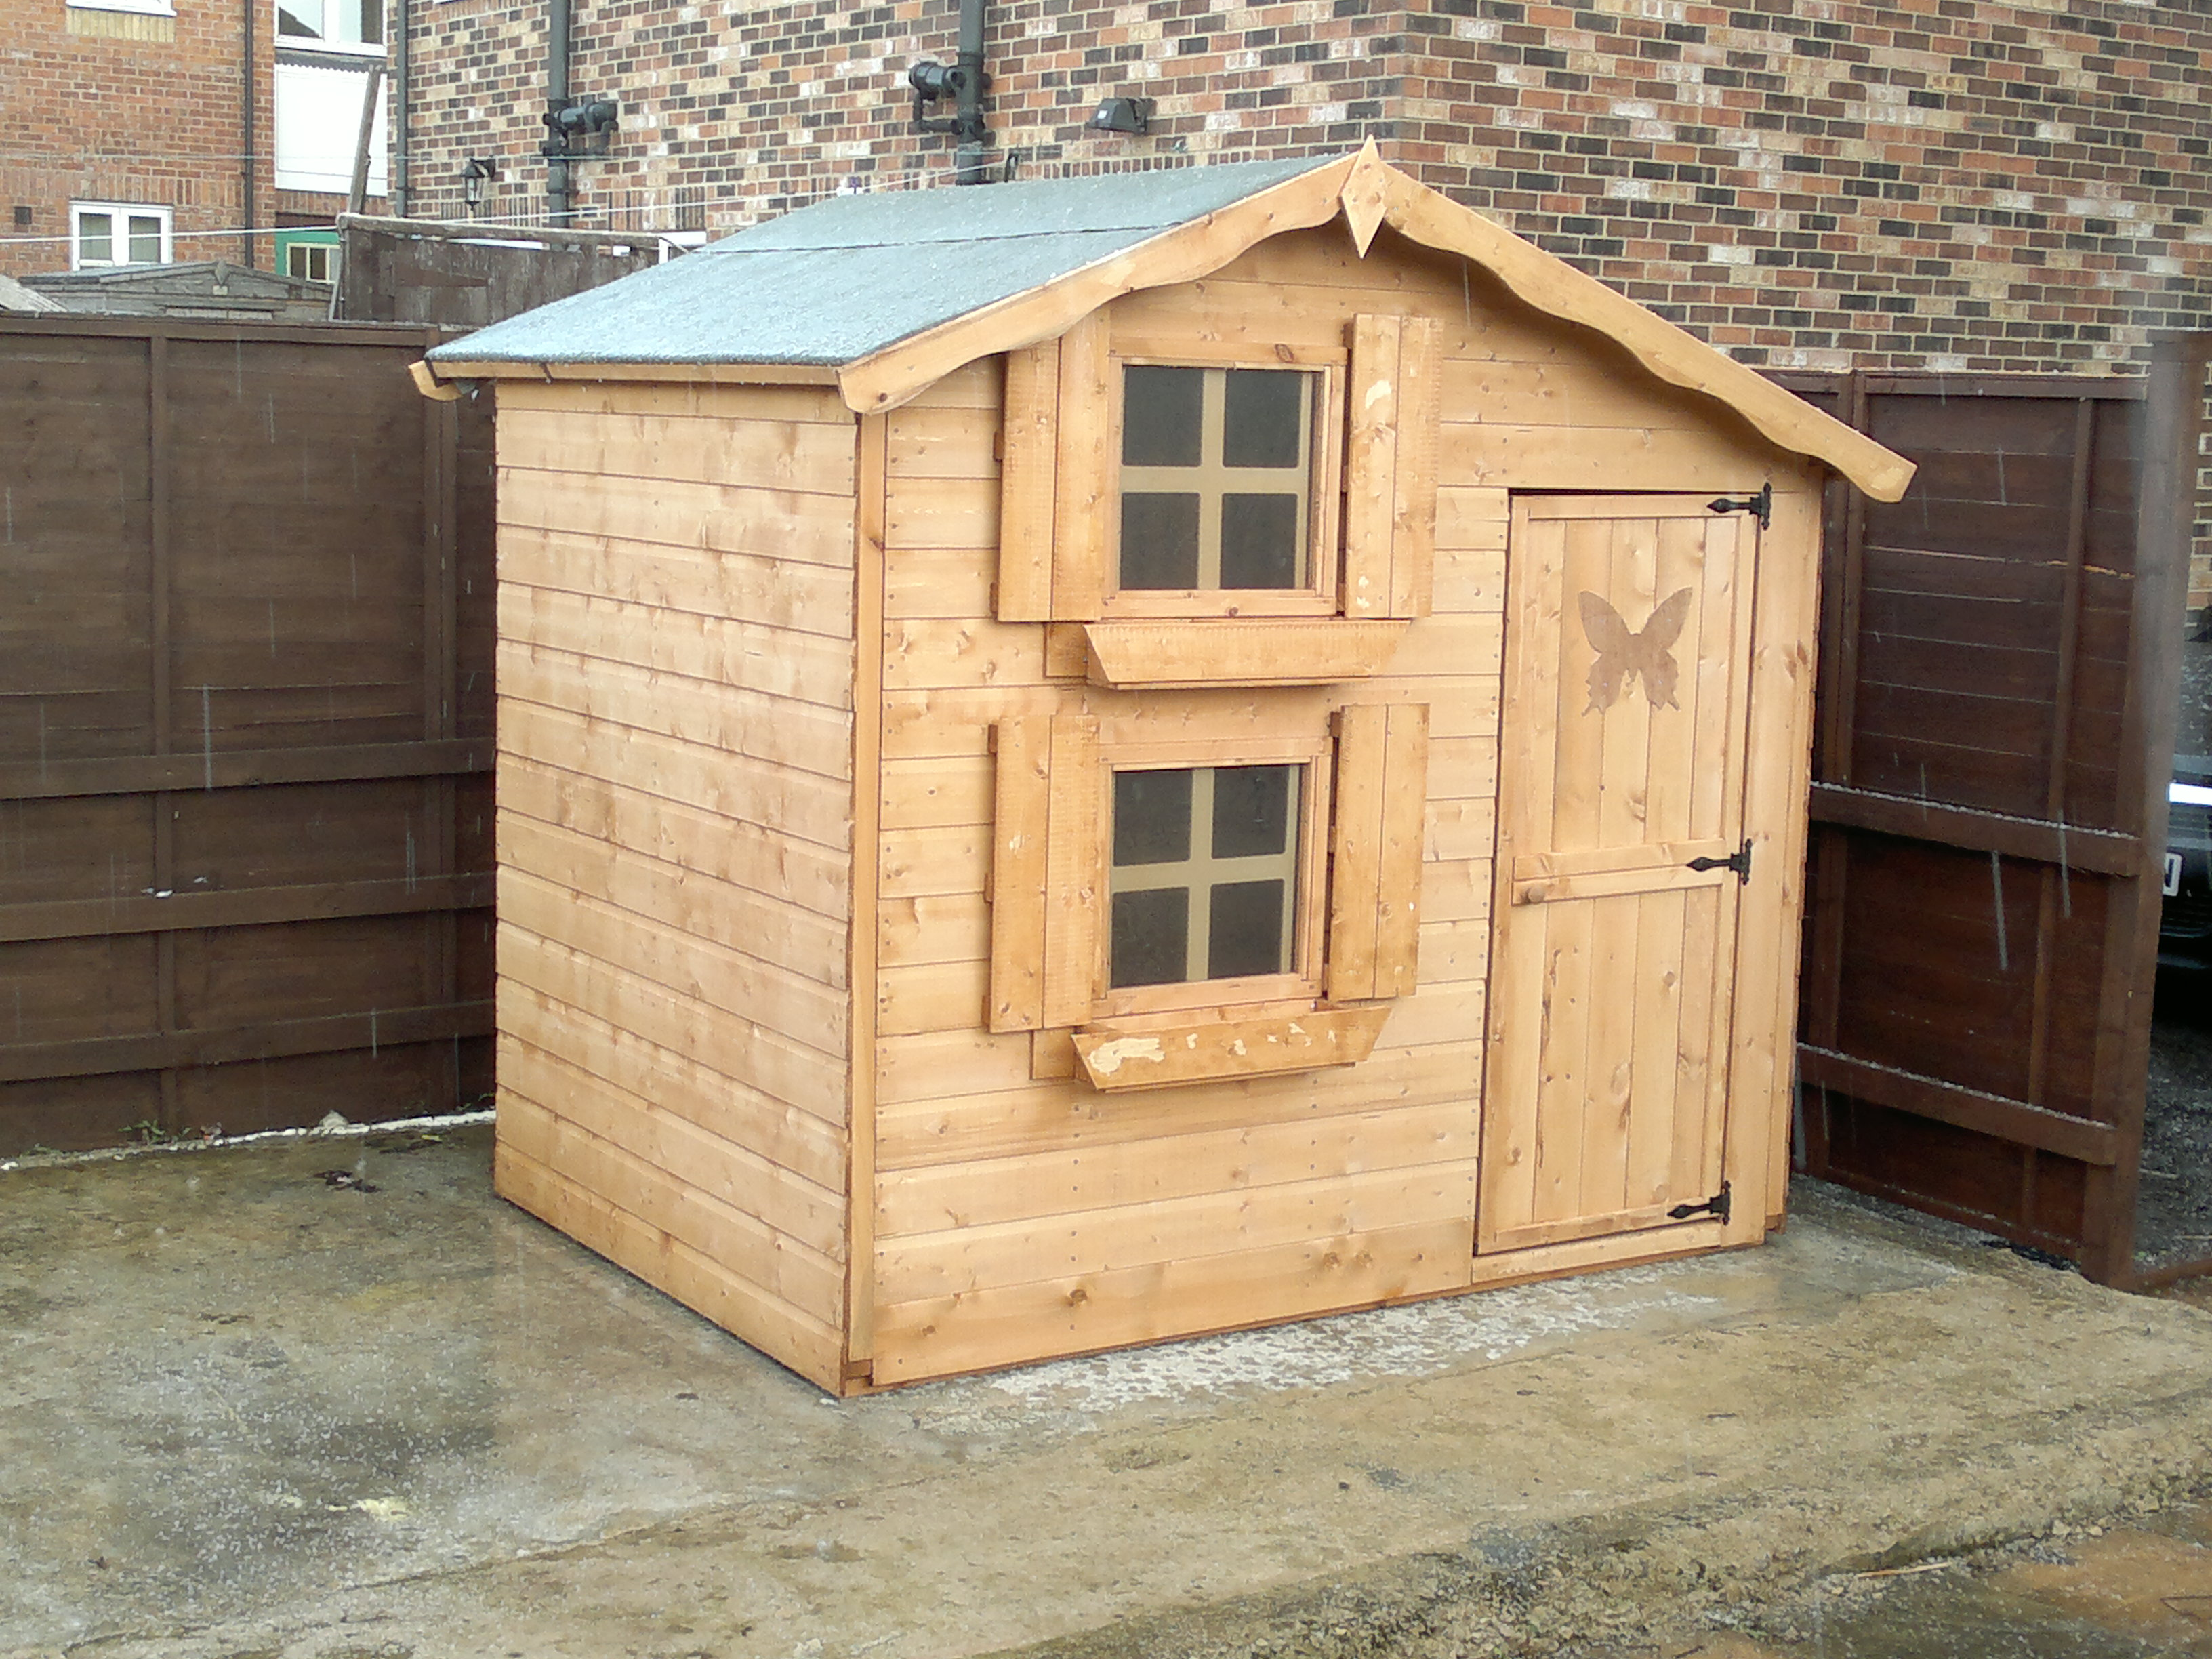 Wooden Playhouse Supplied By Tesco Climbing Frame Installer